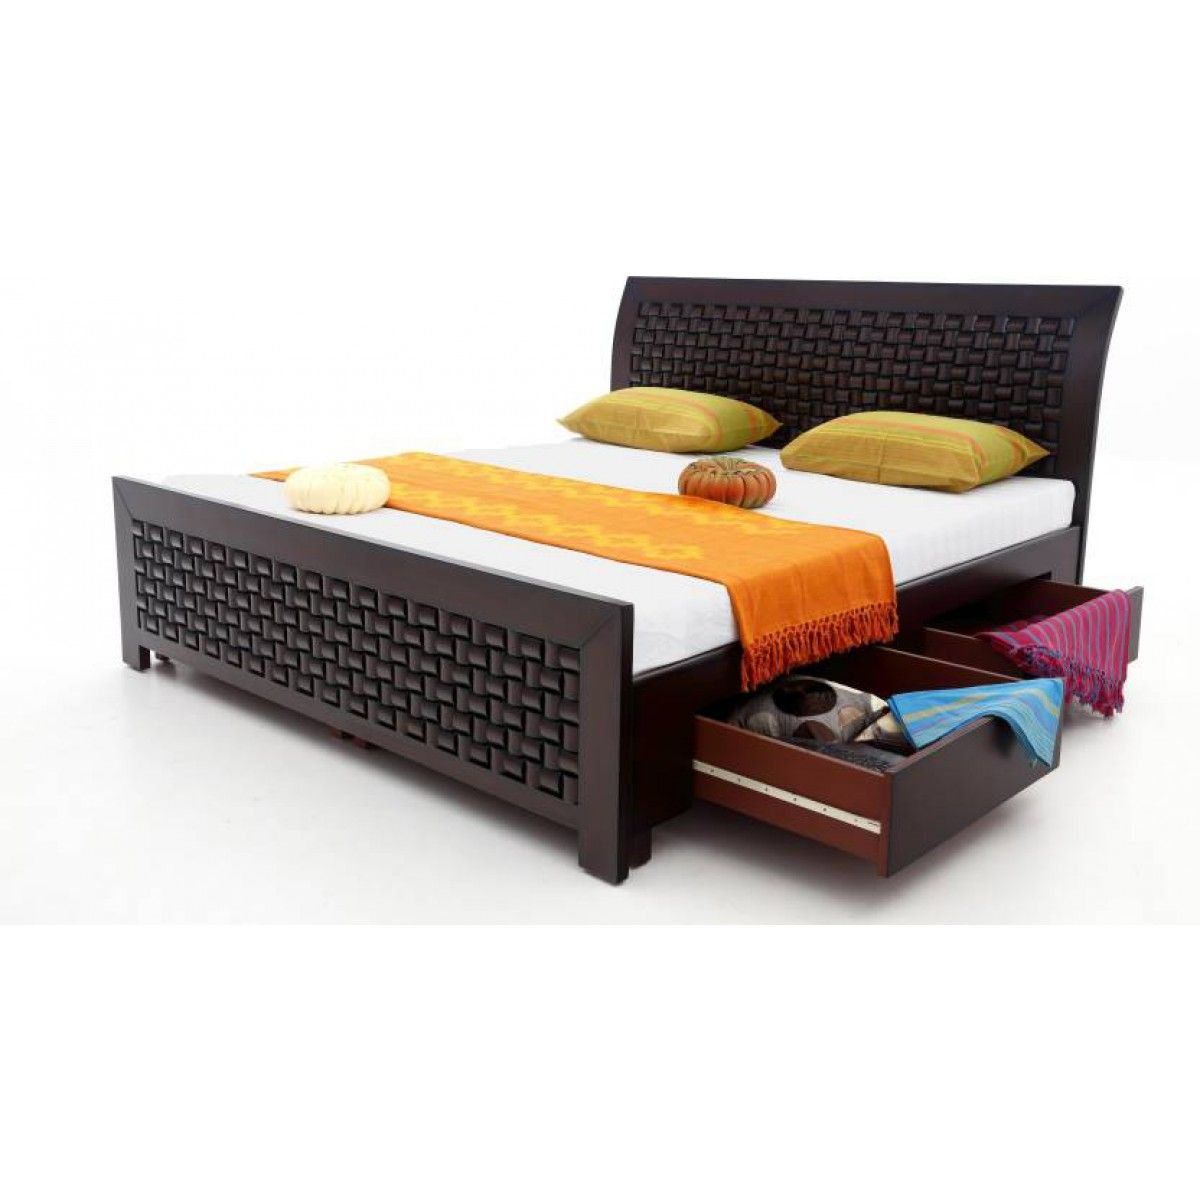 Amazingly Crafted Wooden Queen Size Bed Wide Storage Wooden Bed Design Wooden Bed With Storage Bed Furniture Design